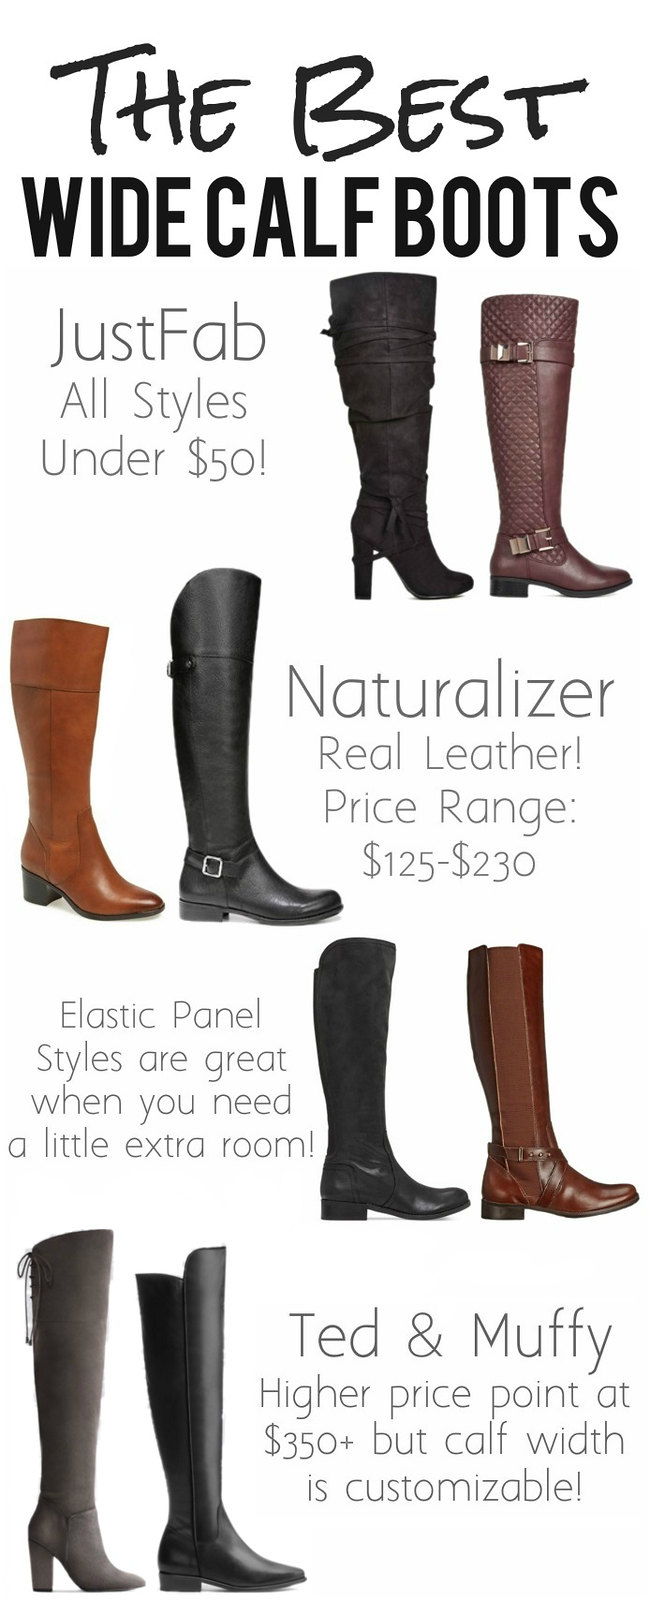 The Best Wide Calf Boots